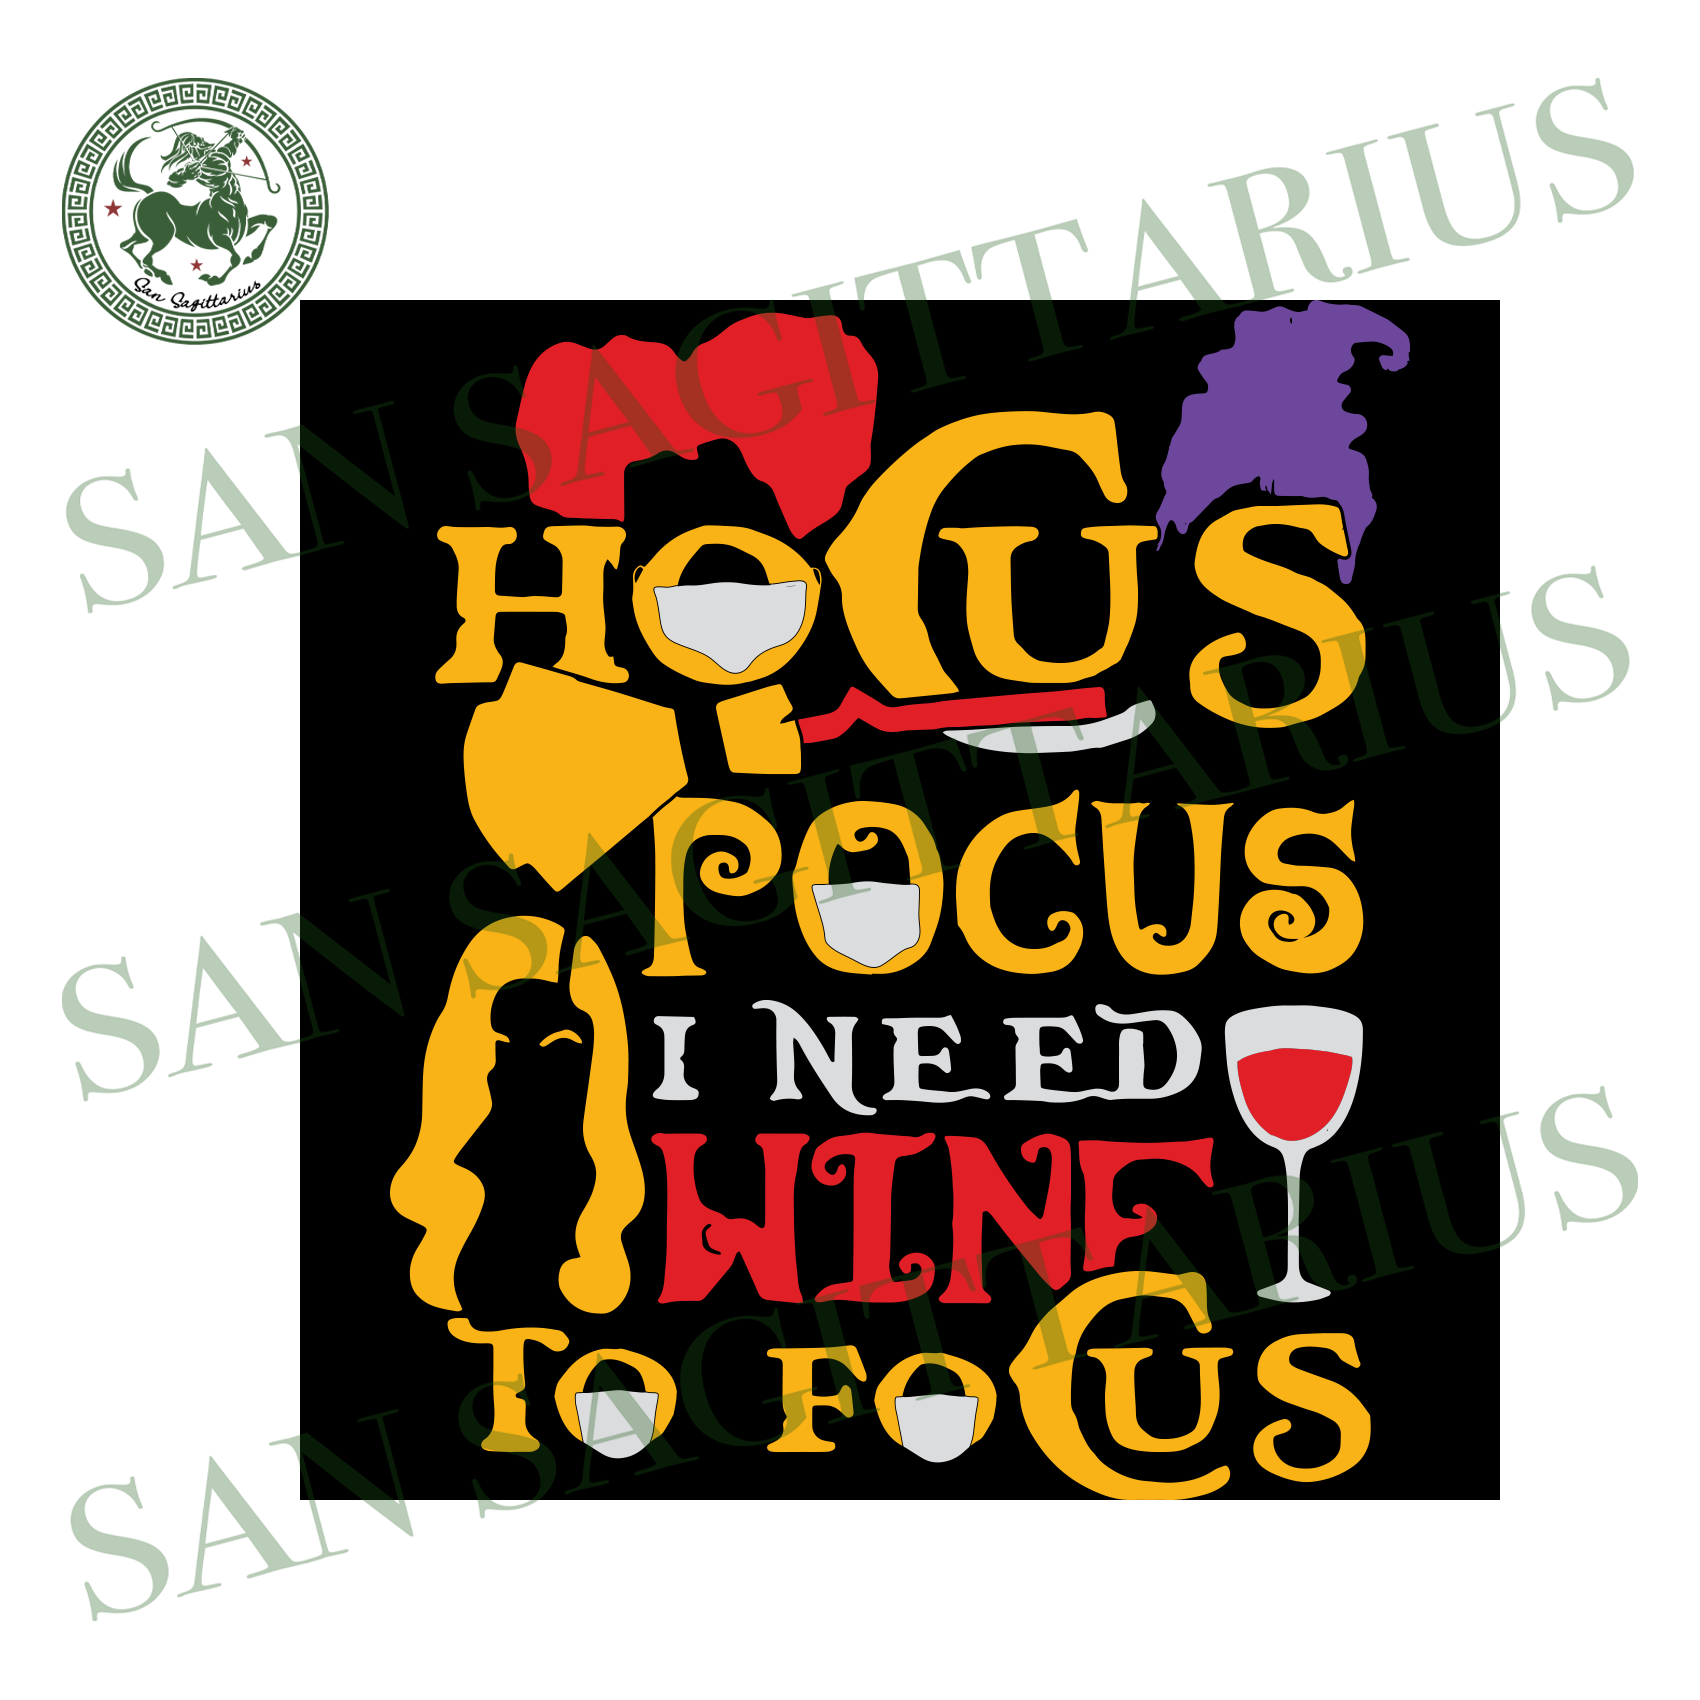 Hocus Pocus I Need Wine To Focus, Halloween Svg, Halloween Design, Happy Halloween, Halloween Gift, Halloween Shirt, Broom Svg, Halloween Brooms Svg, Brooms Shirt, Wine Svg, Witch Svg